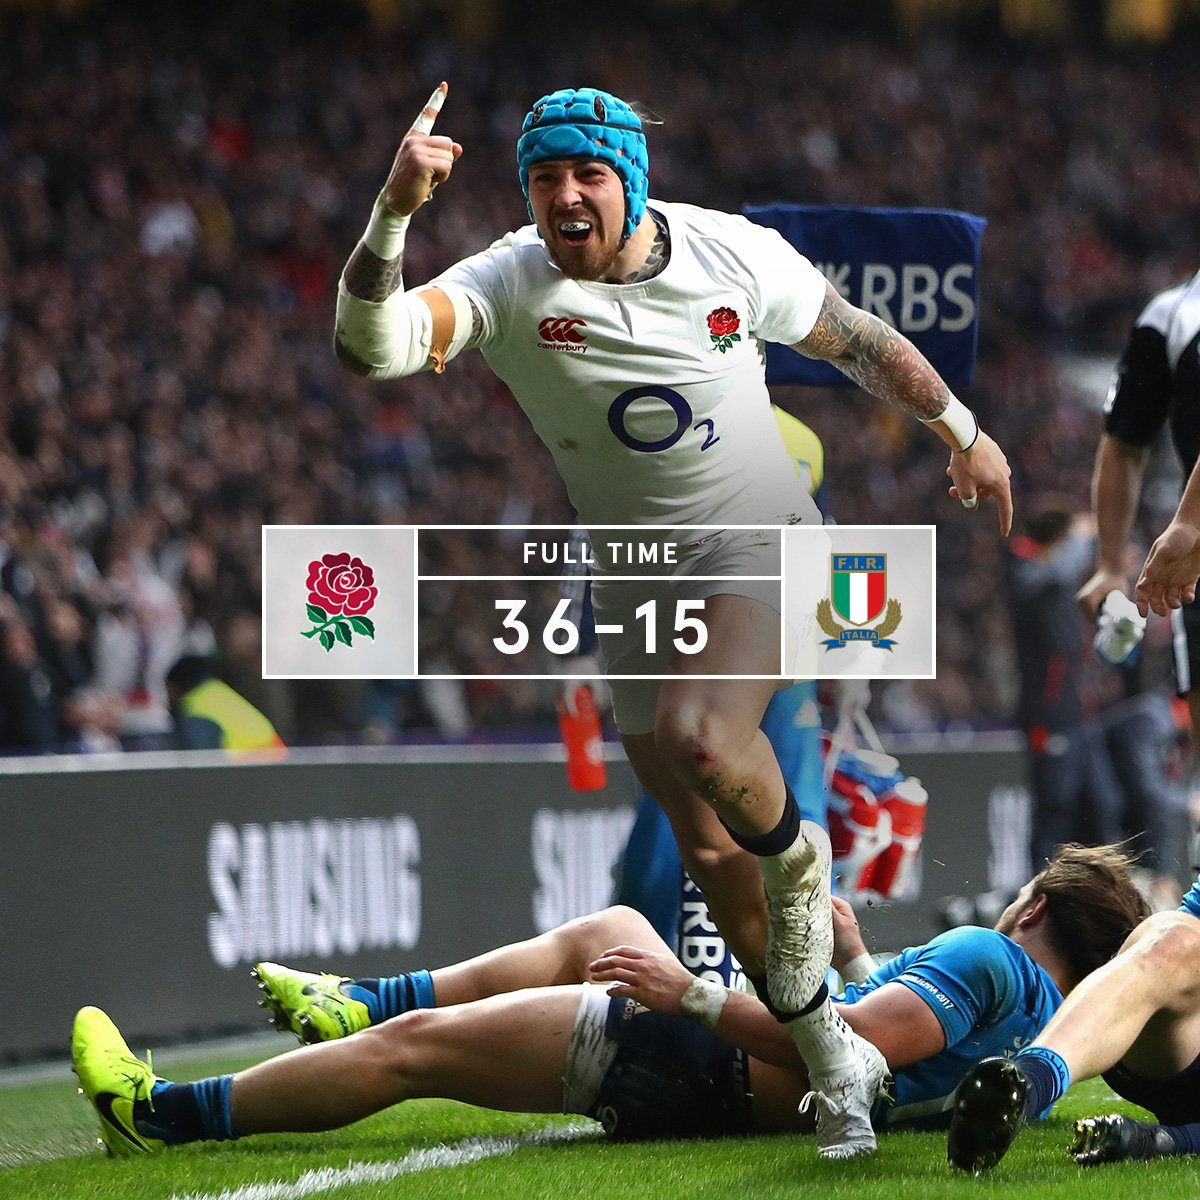 It's FT at Twickenham and England have secured a bonus point win again...